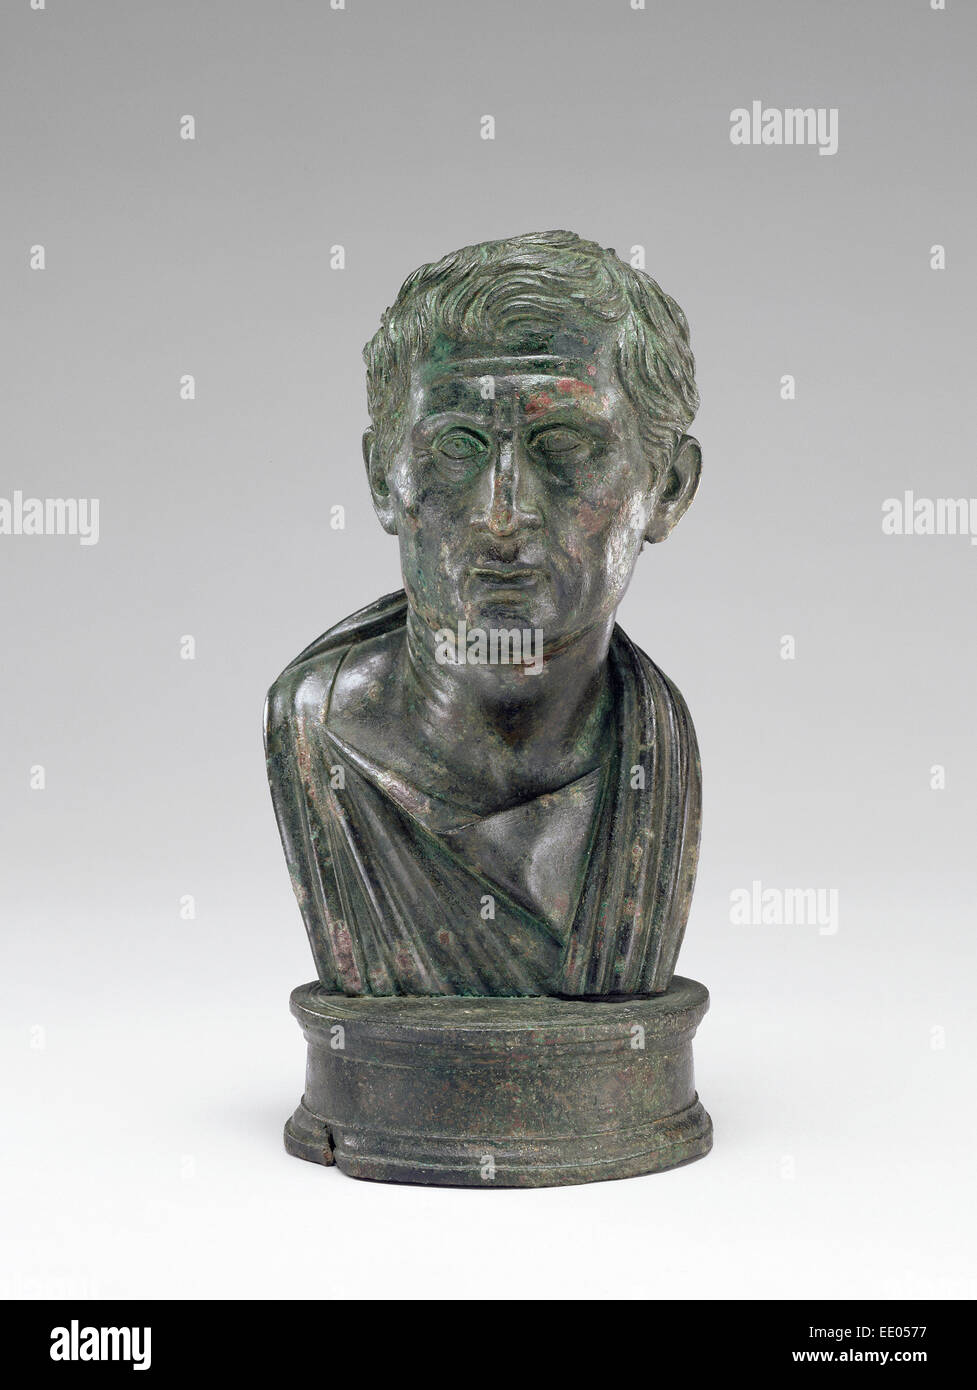 Portrait Bust of Menander; Unknown; 1 - 25; Bronze - Stock Image